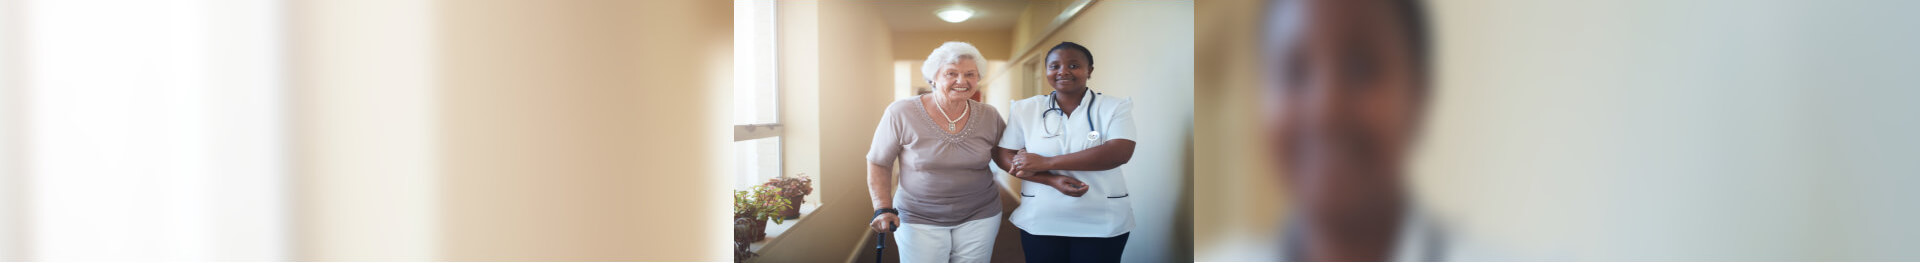 caring female caregiver assisting elderly woman to walk.